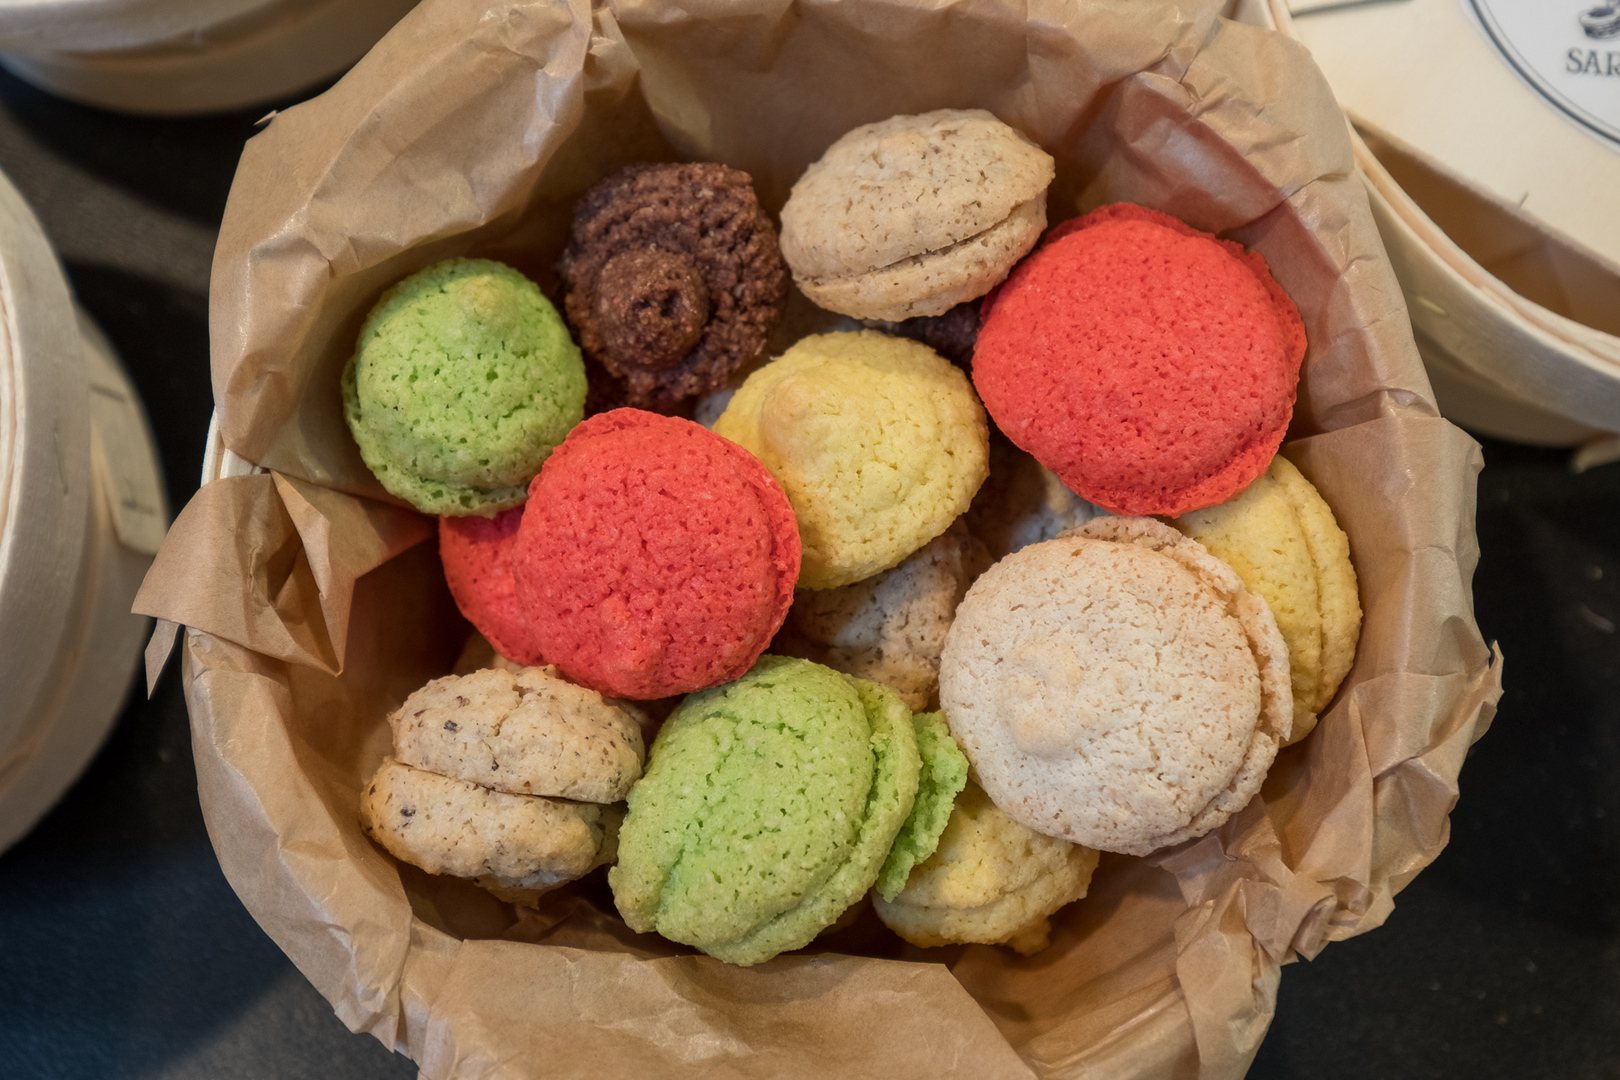 Les Macarons traditionelles